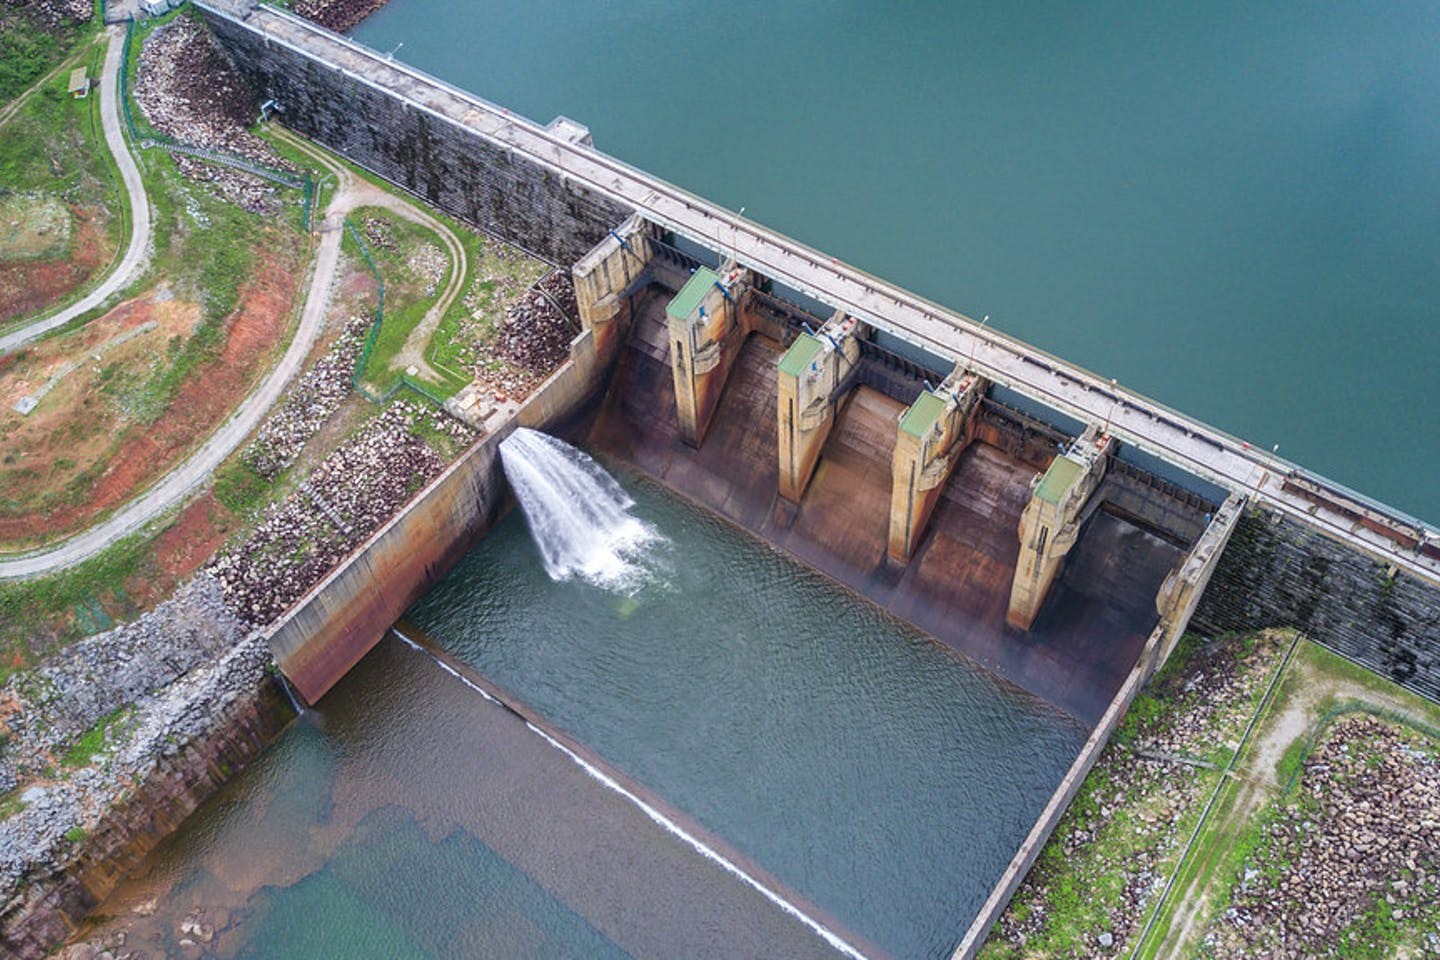 hydropower plant on Nam Theun river in Laos PDR